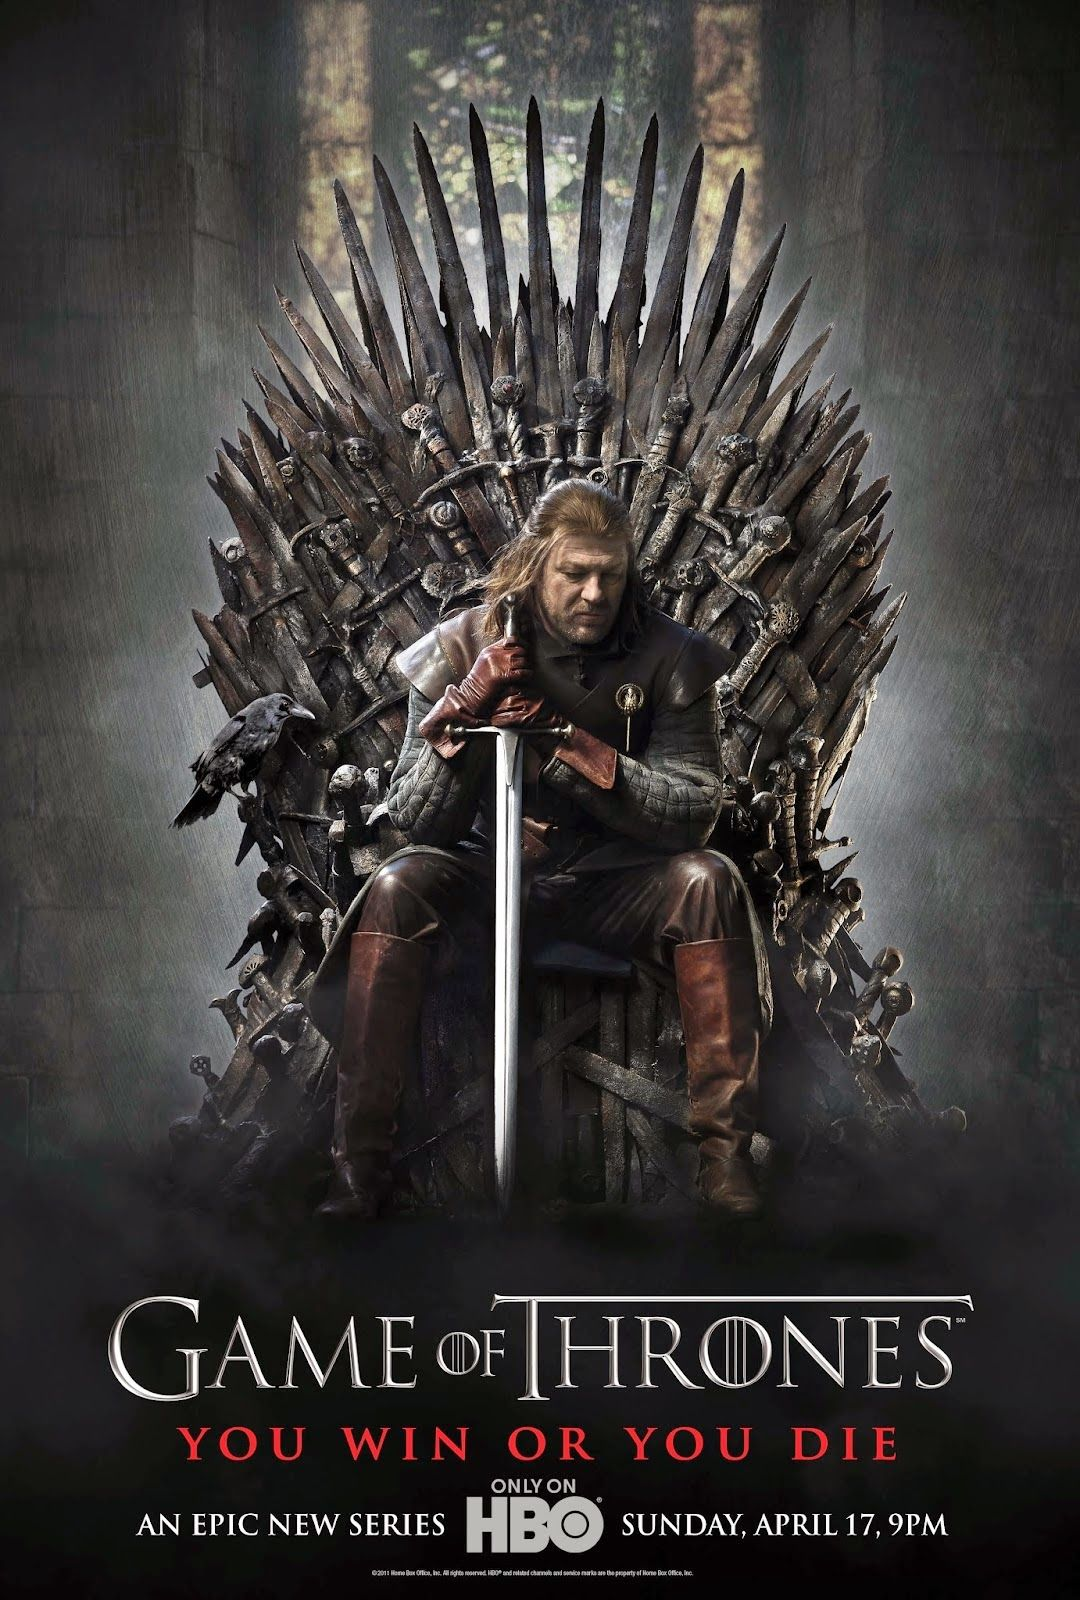 Watch Game of Thrones Online Free   Watch Movies Online Free Without     Watch Game of Thrones Online Free   Watch Movies Online Free Without  Downloading Anything Or Signing Up